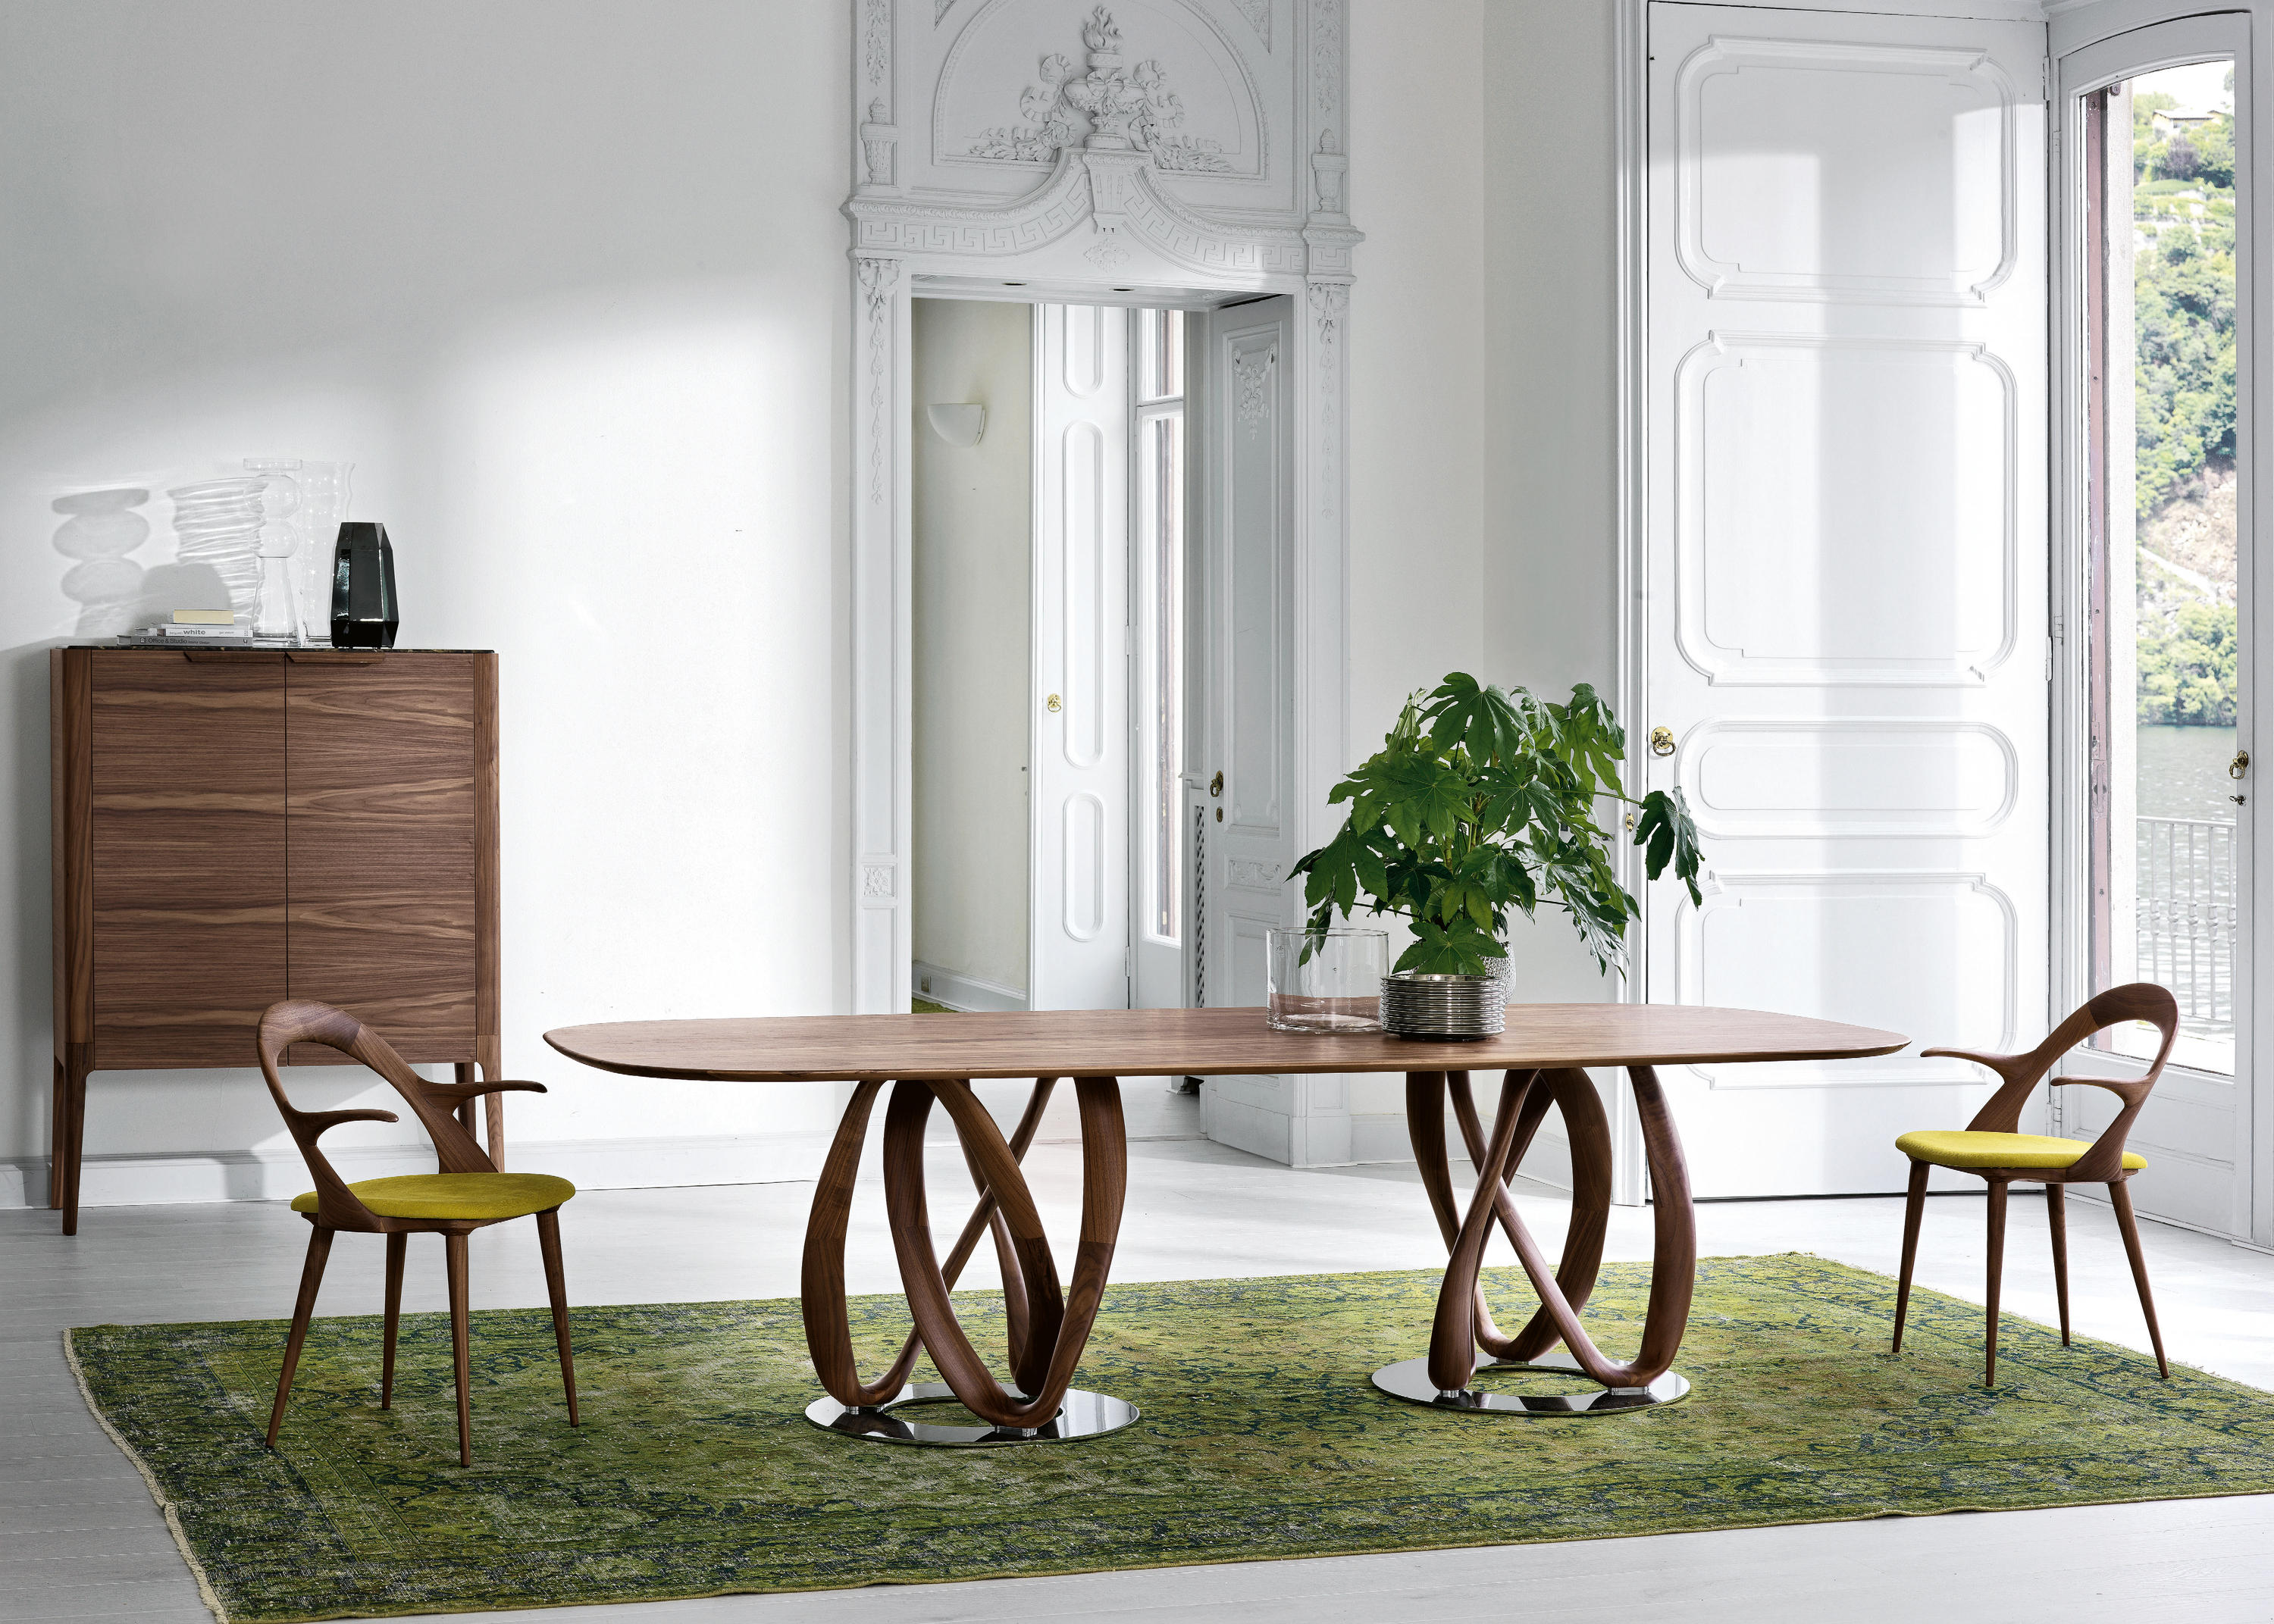 INFINITY Meeting room tables from Porada